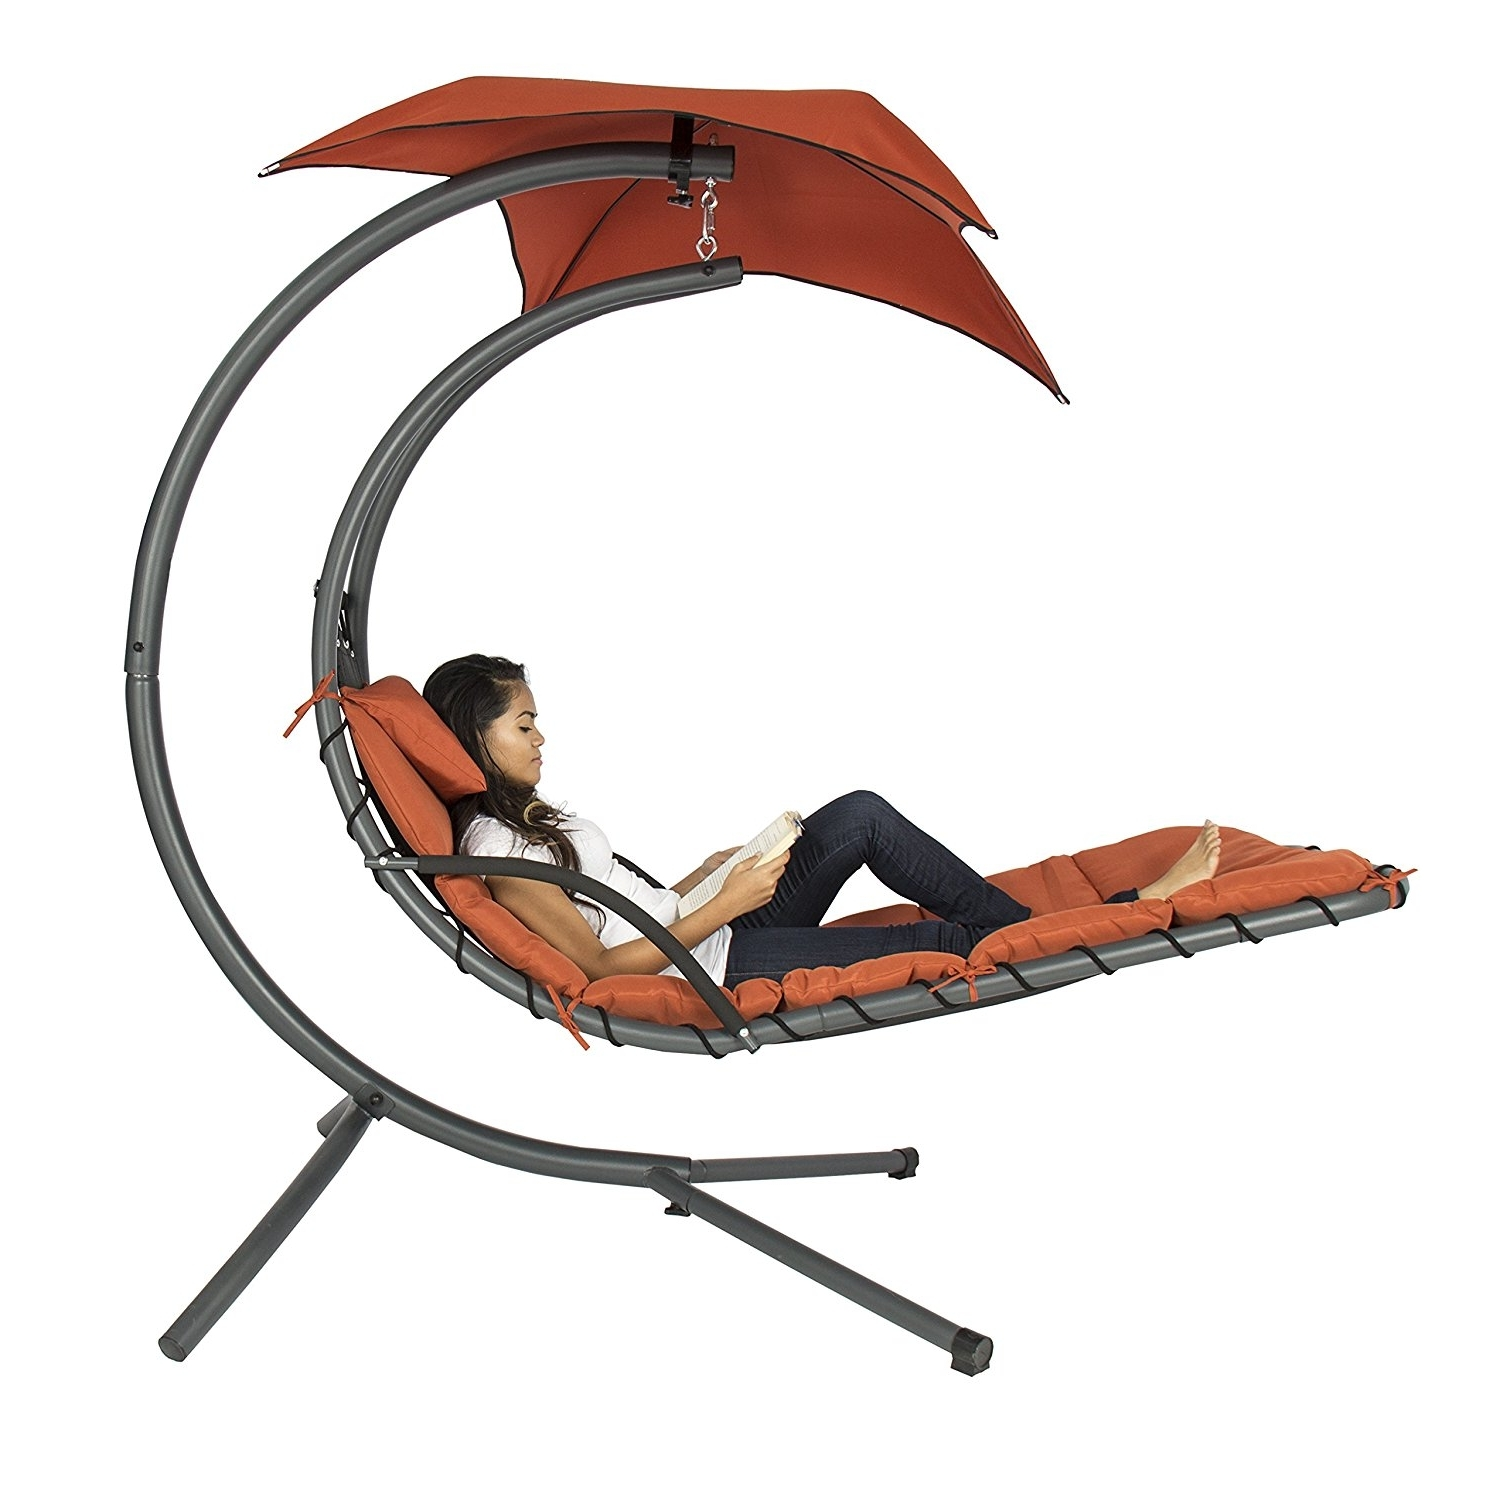 Amazon: Best Choice Products Hanging Chaise Lounger Chair Arc Pertaining To Latest Heavy Duty Chaise Lounge Chairs (View 14 of 15)